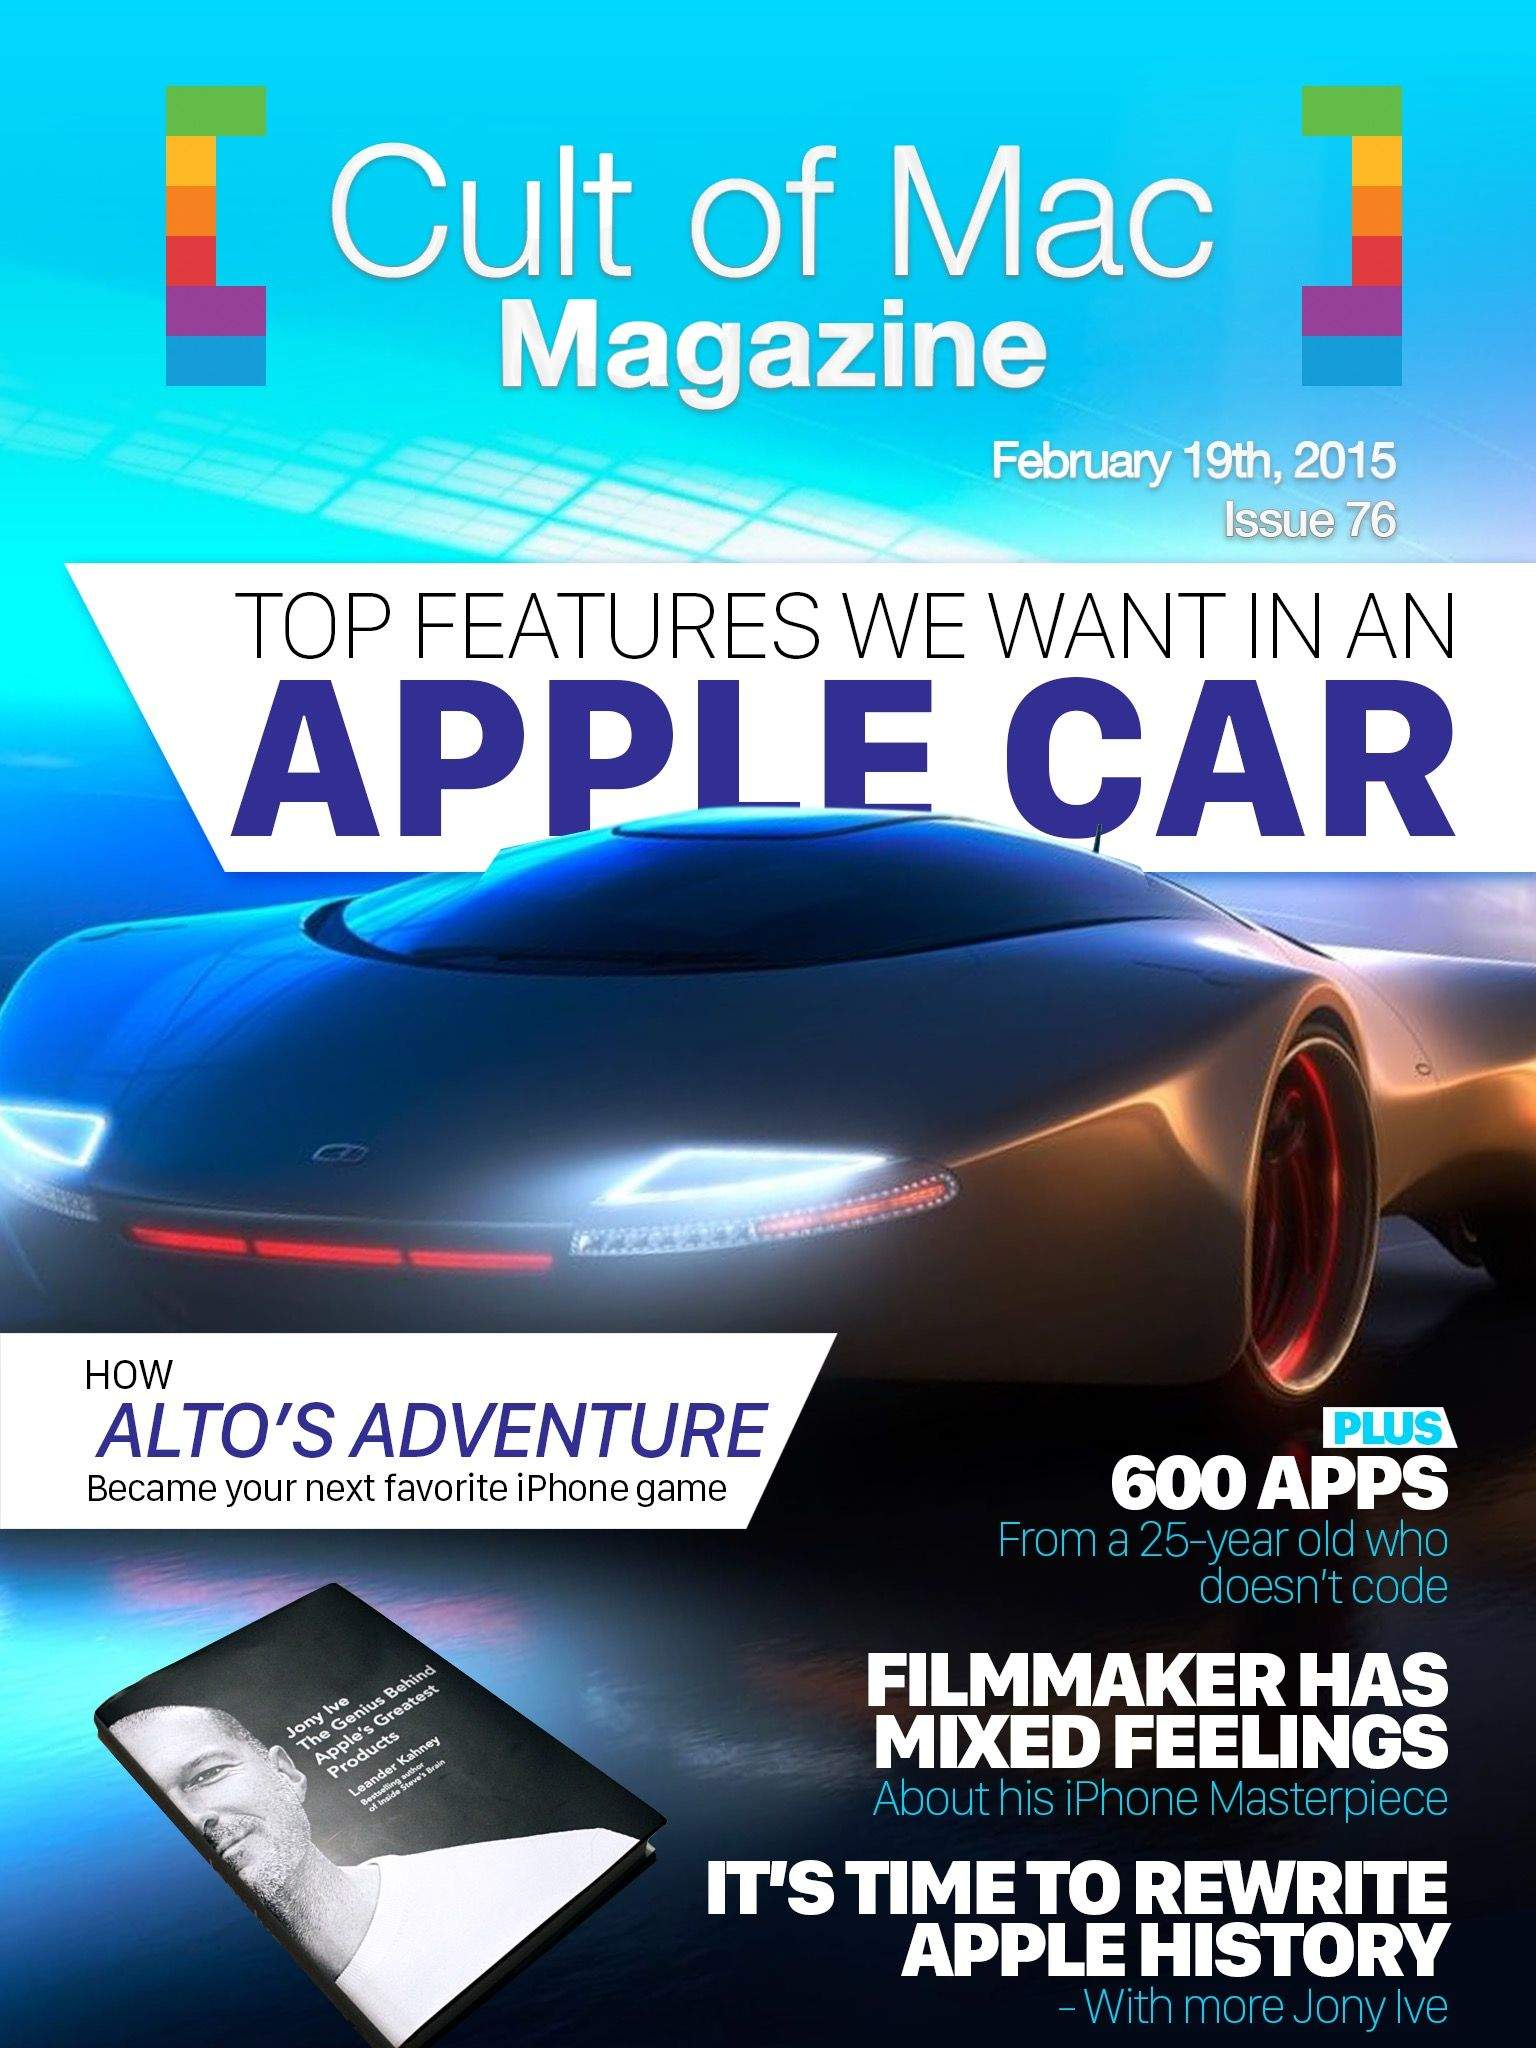 What will the Apple Car even look like? Cover design: Stephen Smith